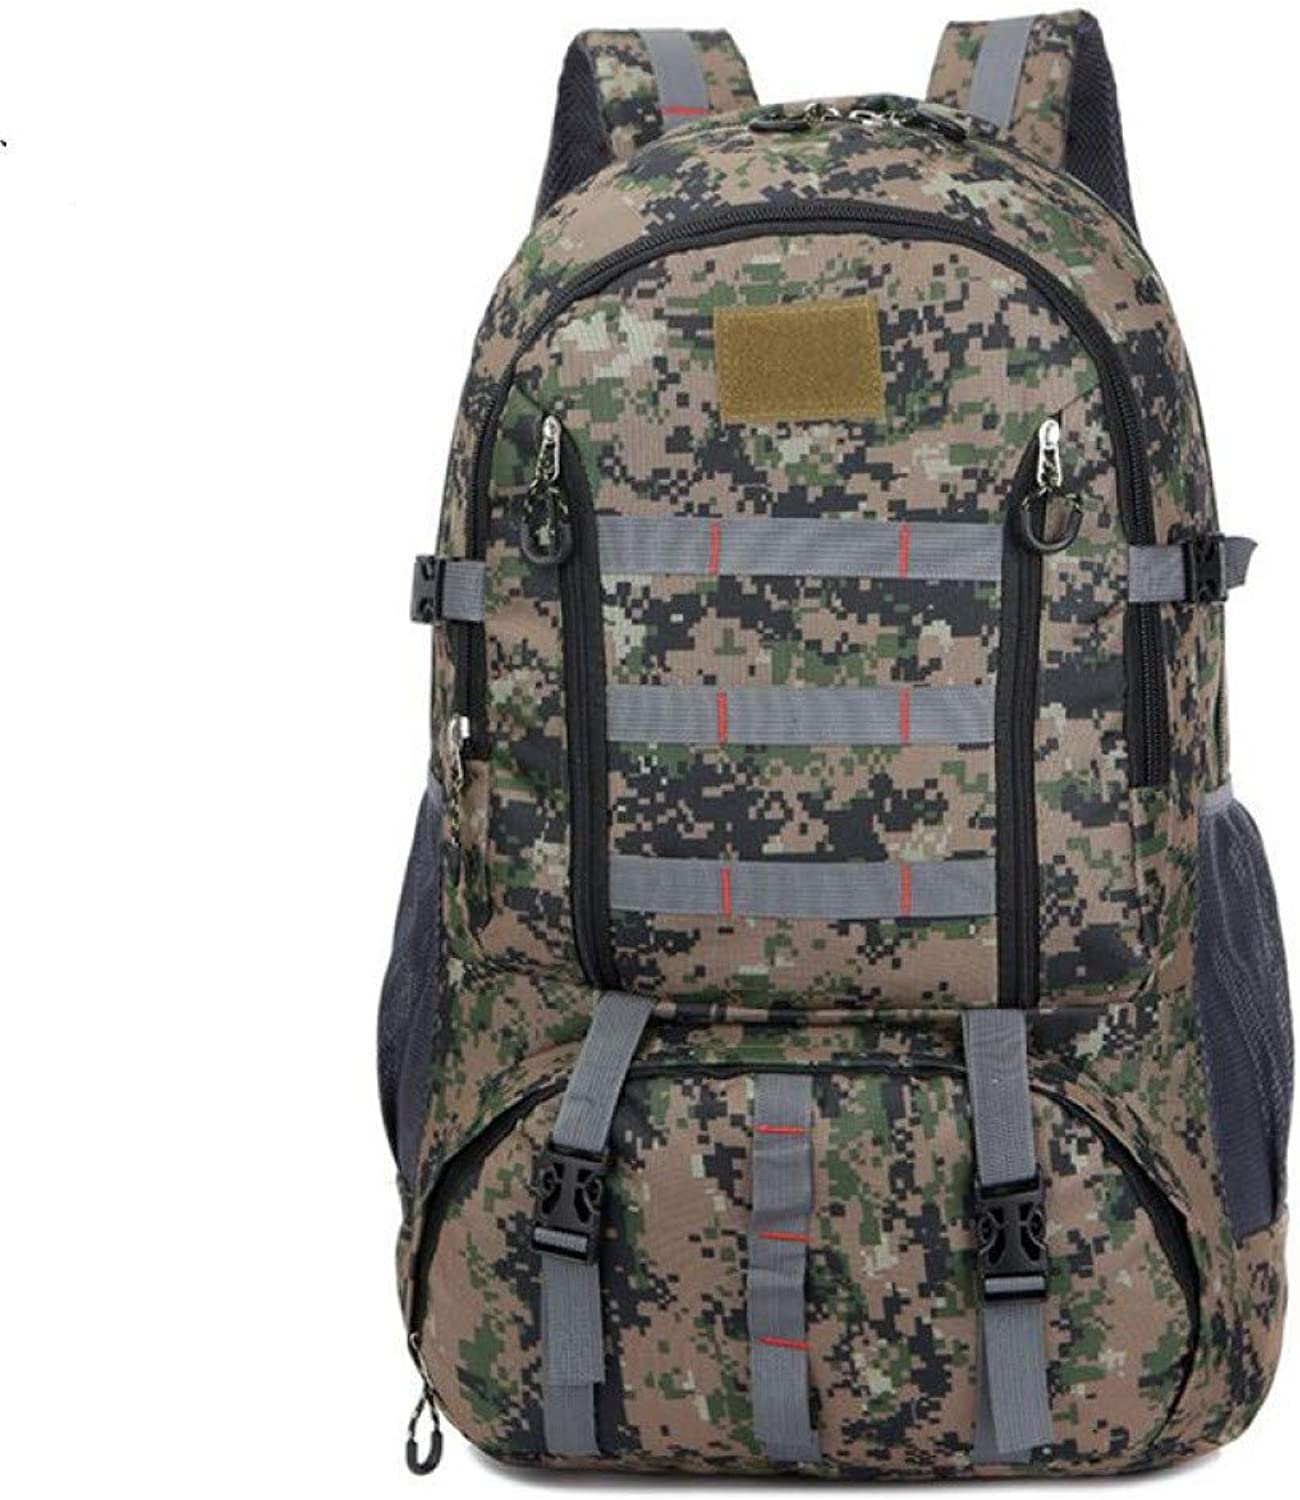 HUYANNABAO Outdoor Camouflage Military Nylon Waterproof Bags Hot Professional Camping and Hiking Tactical Backpack